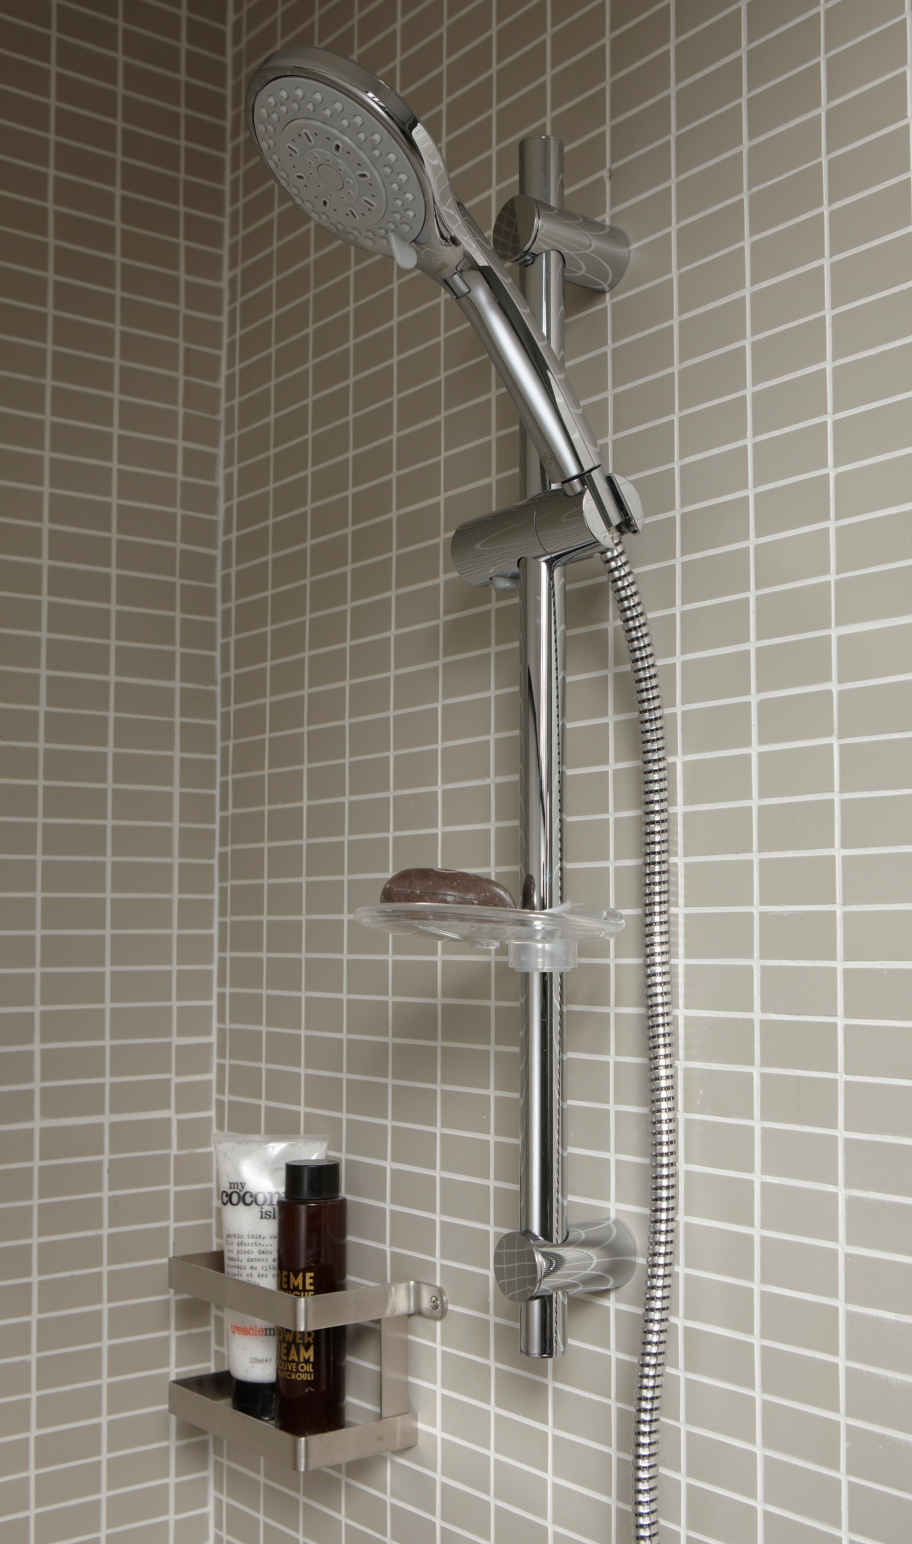 Double vasque salle de bain brico depot for Ensemble de douche leroy merlin